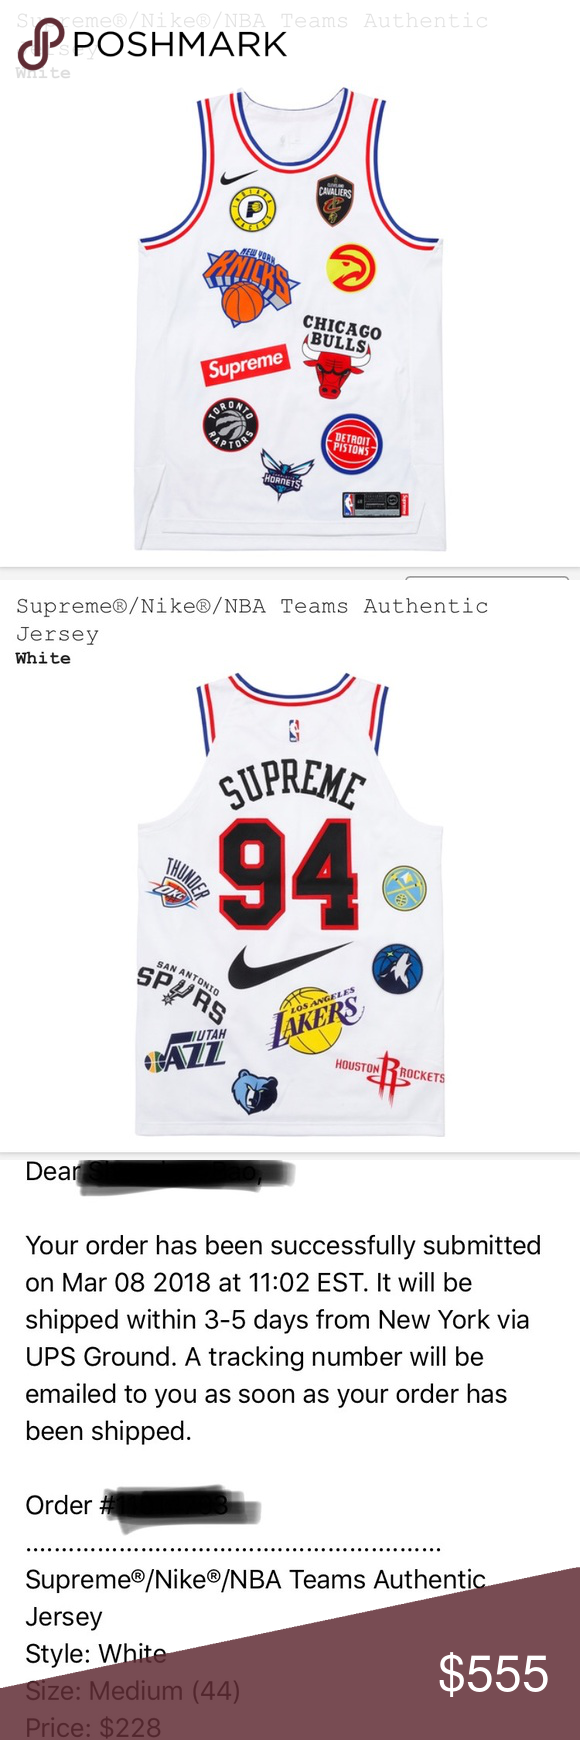 Supreme x Nike NBA Teams Authentic Jersey White Brand new from Supreme  Website Deadstock fa1a15511